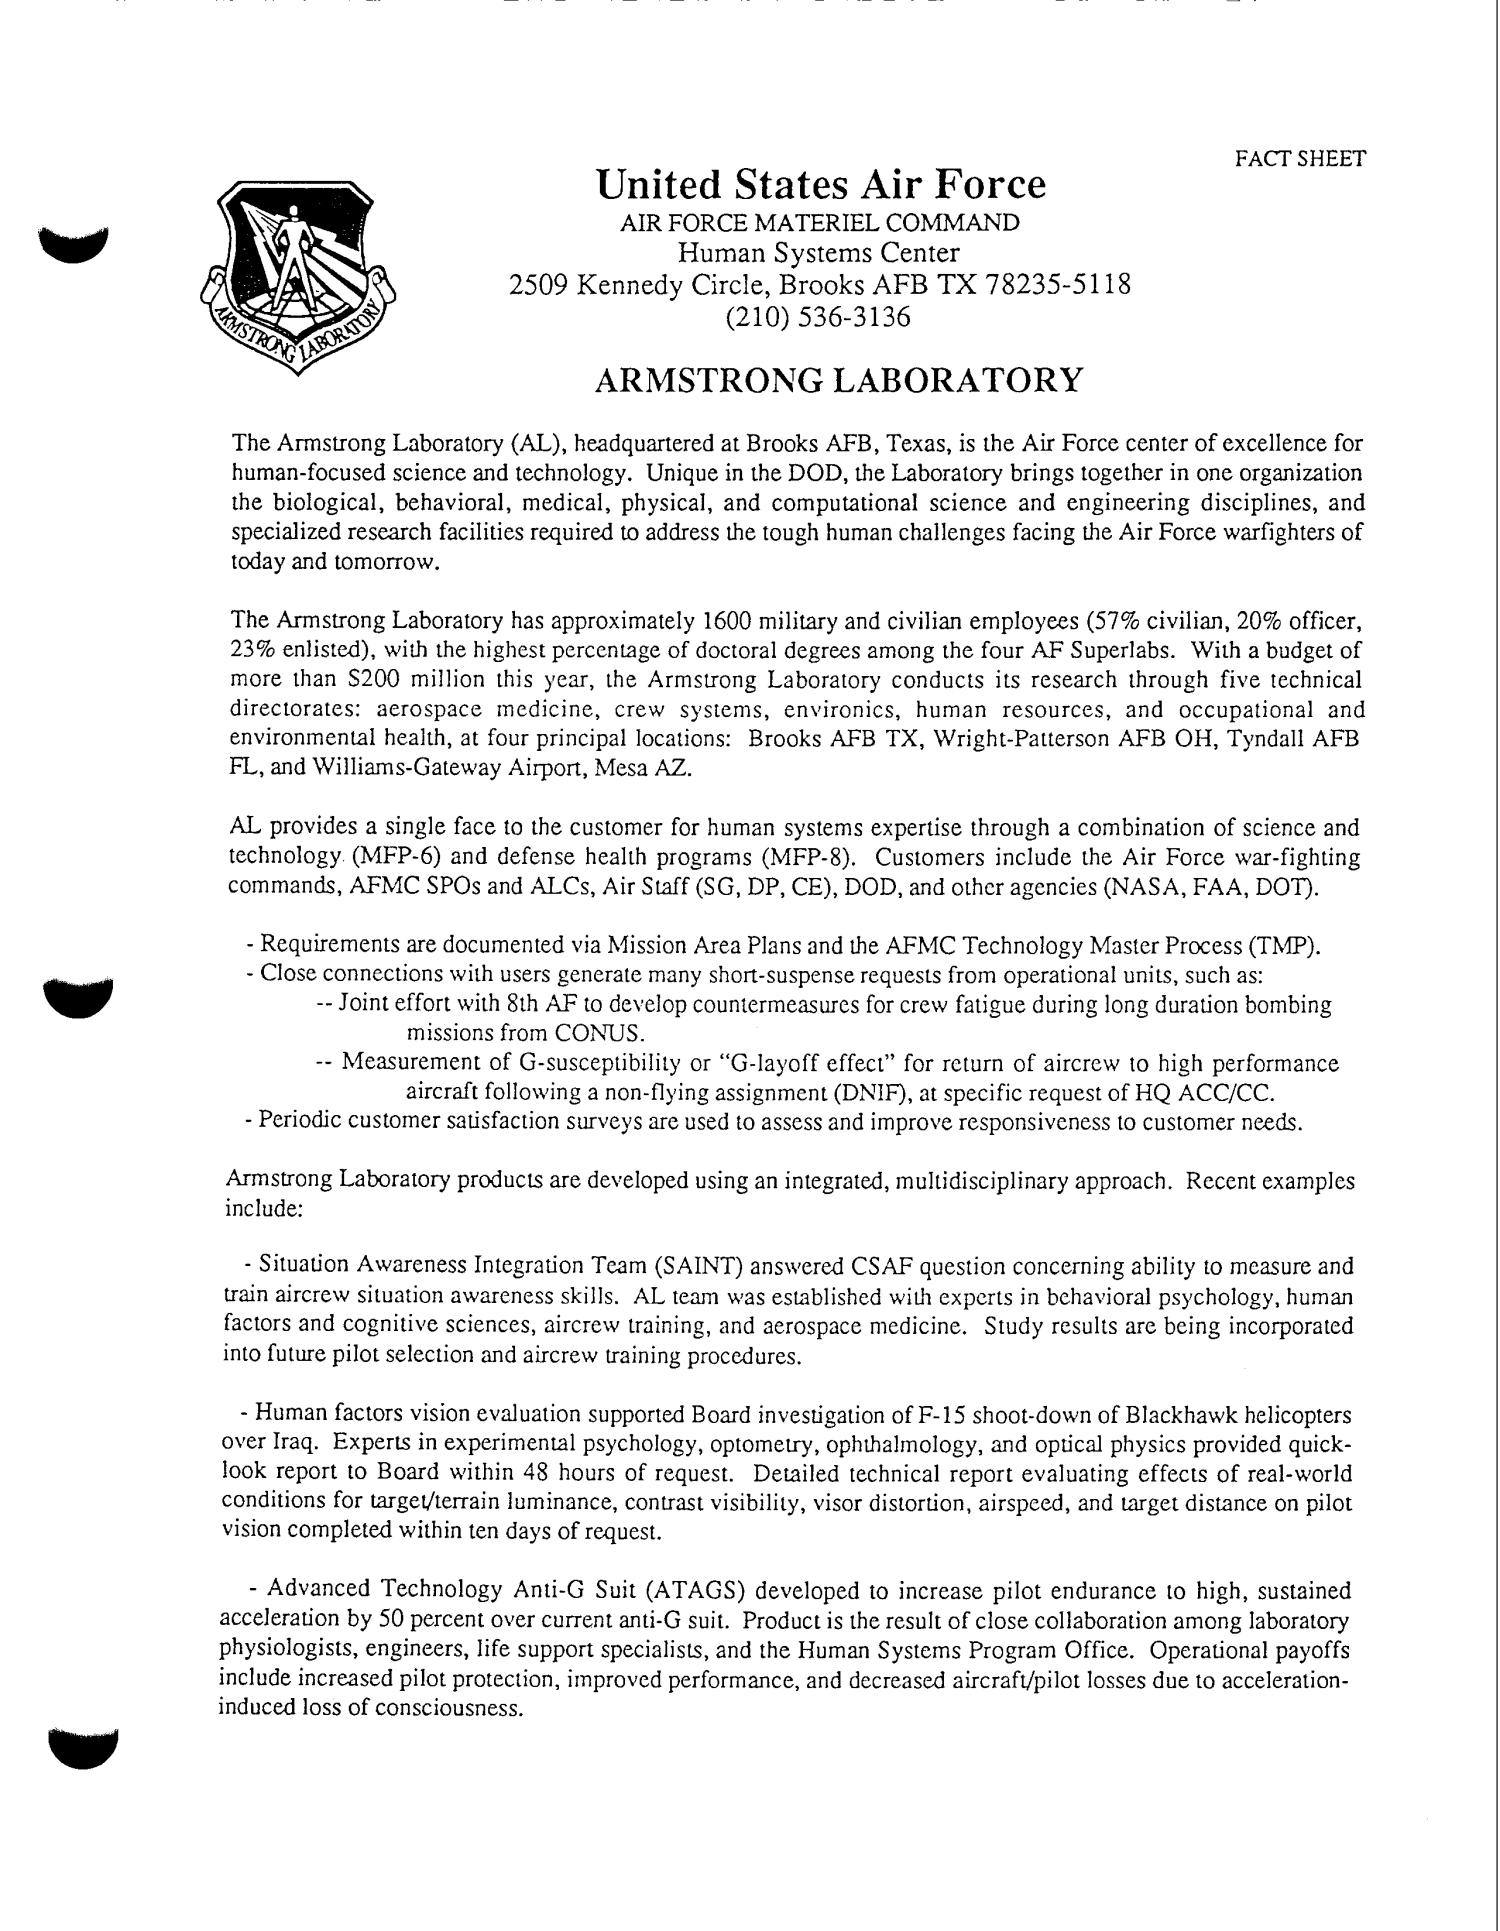 brooks air force base analysis and recommendations